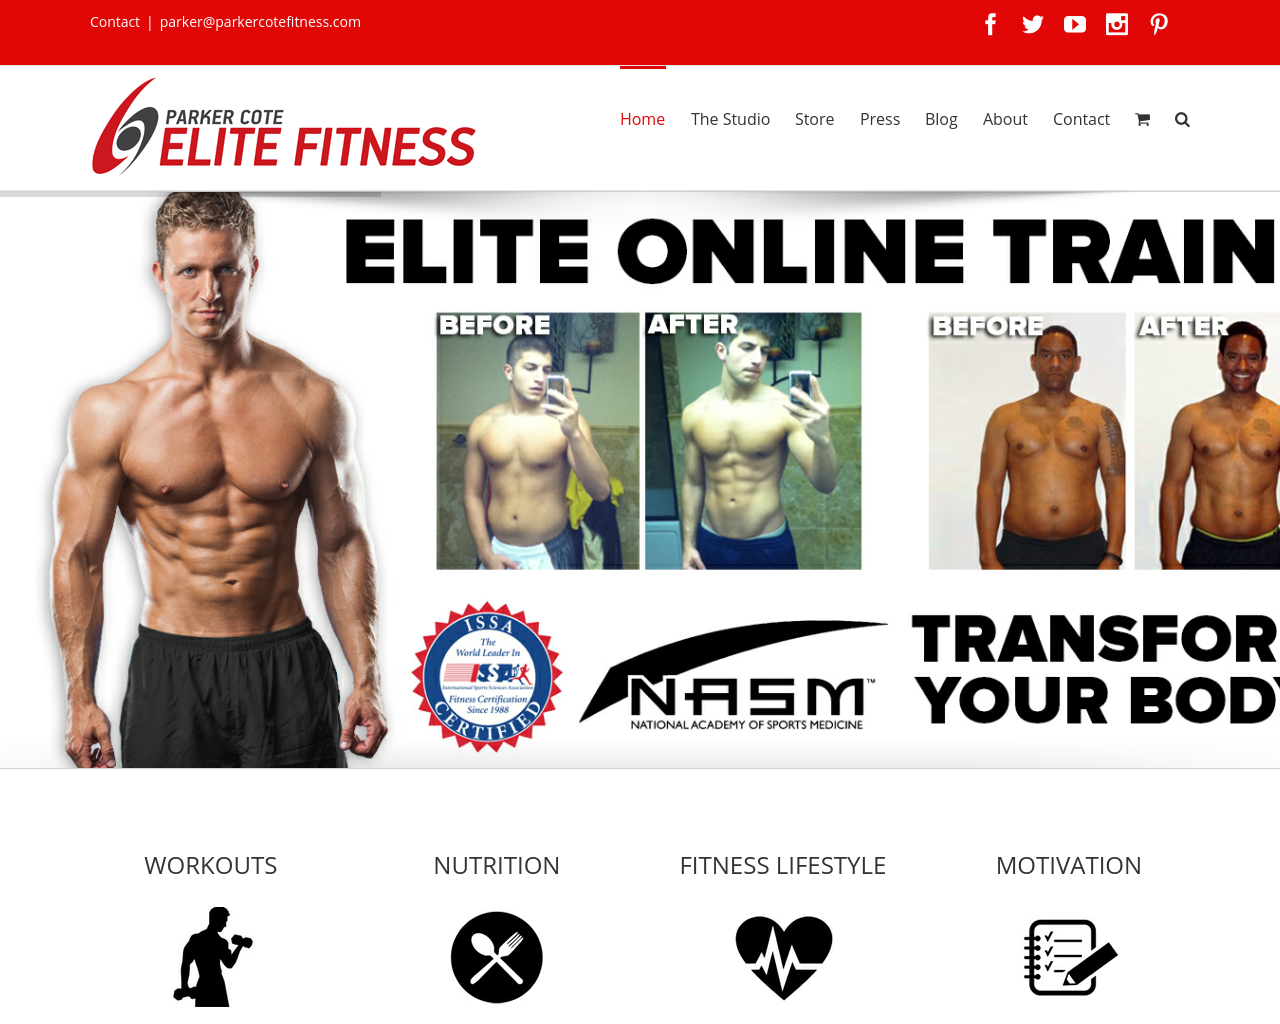 Parker-Cote-Elite-Fitness-Advertising-Reviews-Pricing